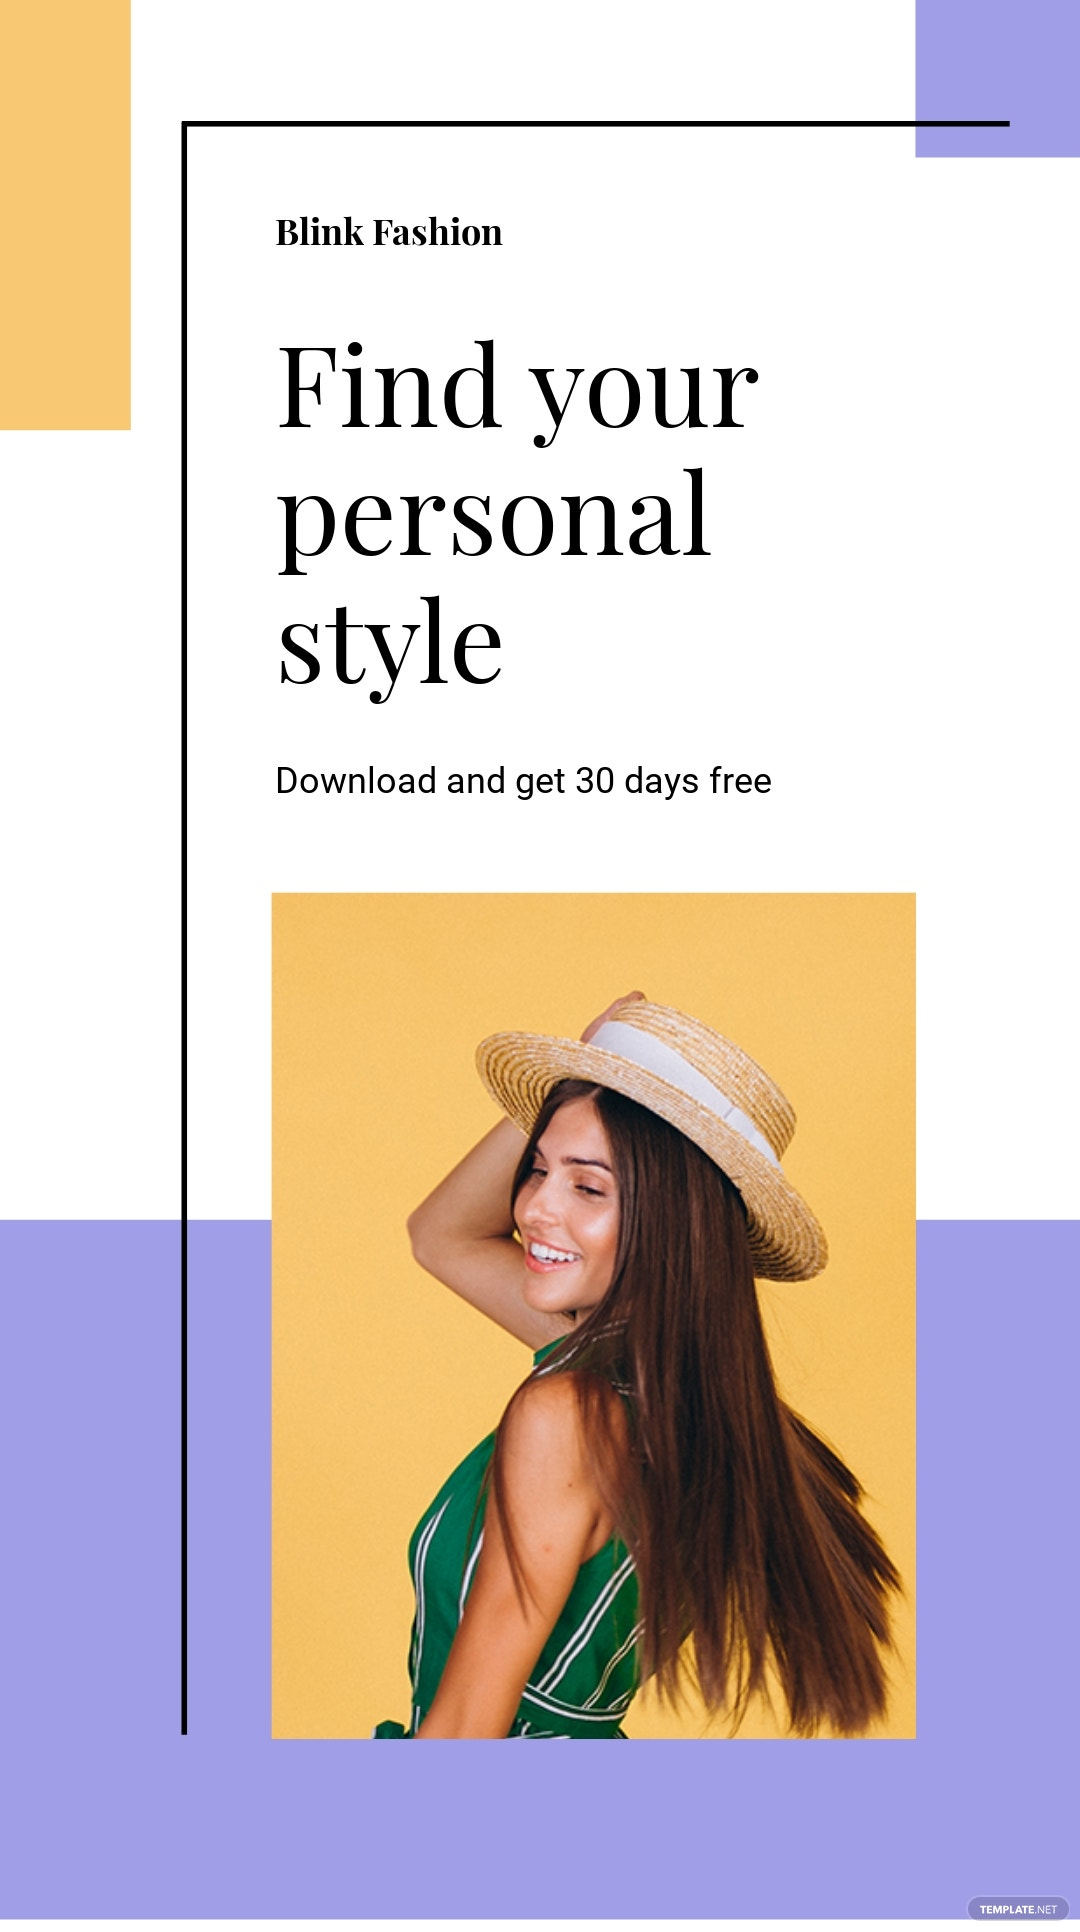 Free Fashion Brands App Promotion Instagram Story Template